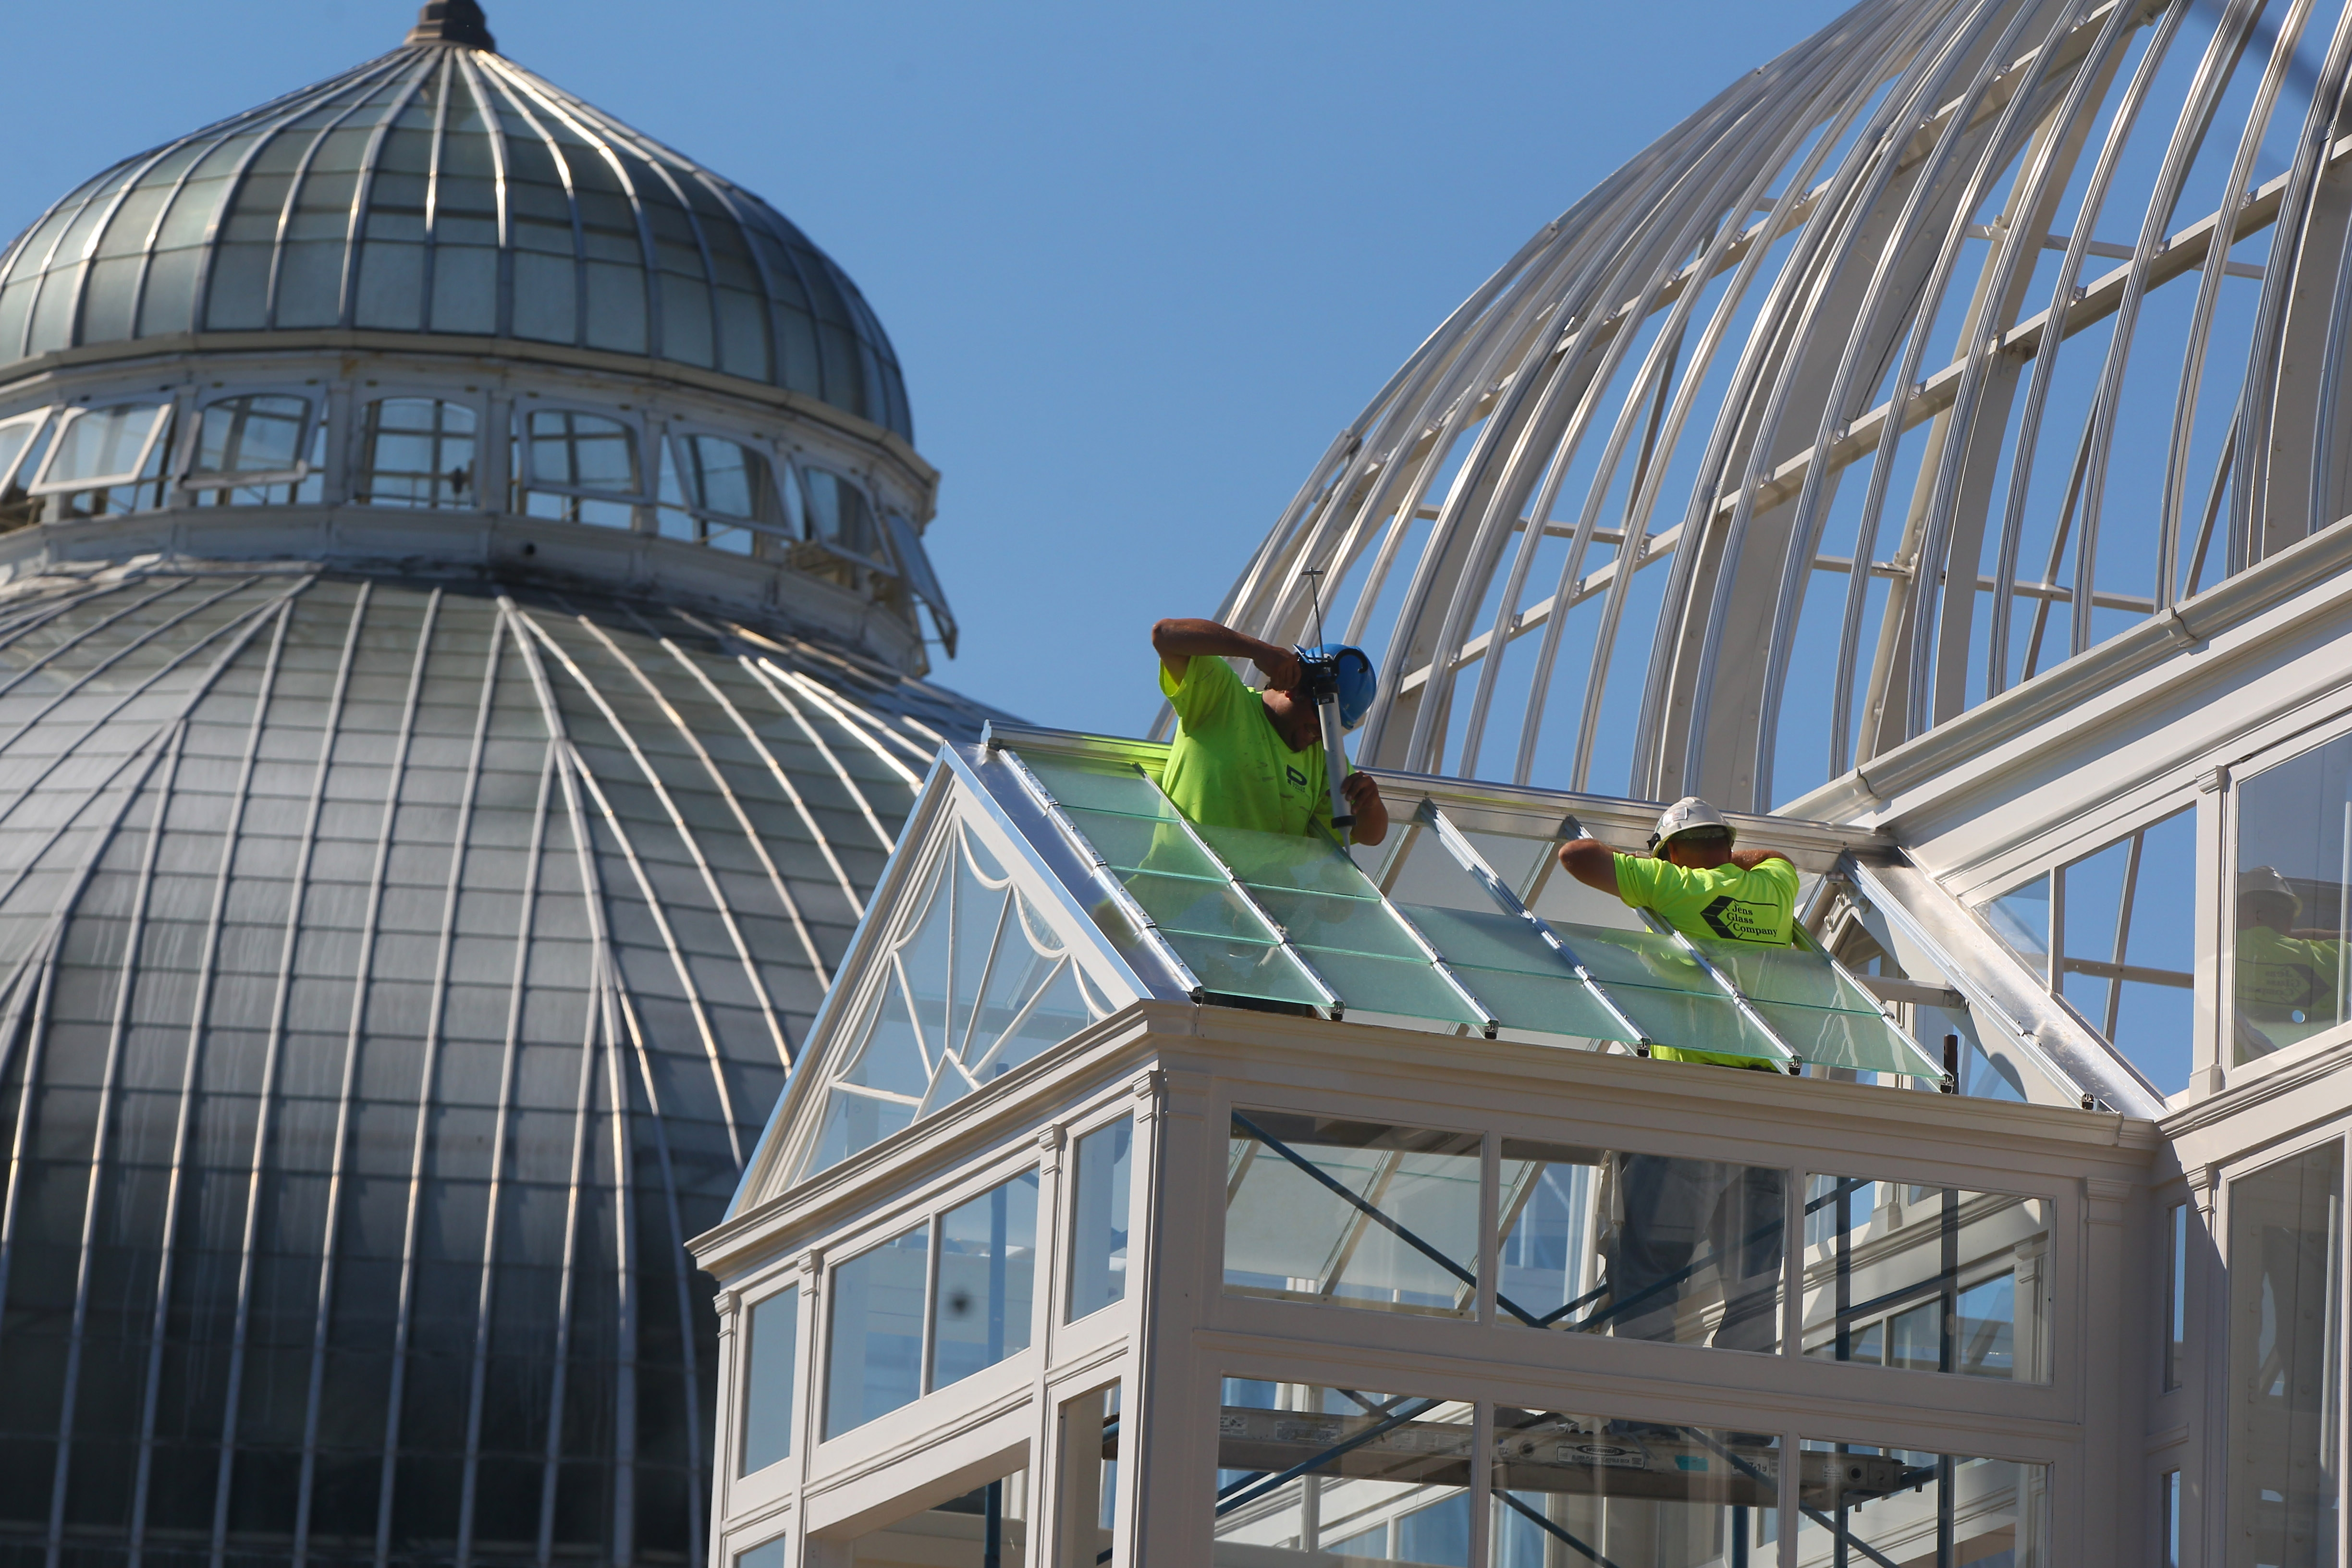 Window glaziers Brian Cruber, left, and Mike Nowakowski install glass panels Tuesday as work continues on the renovations at the Buffalo and Erie County Botanical Gardens in South Buffalo. Two new exhibits will open in two refurbished greenhouses.